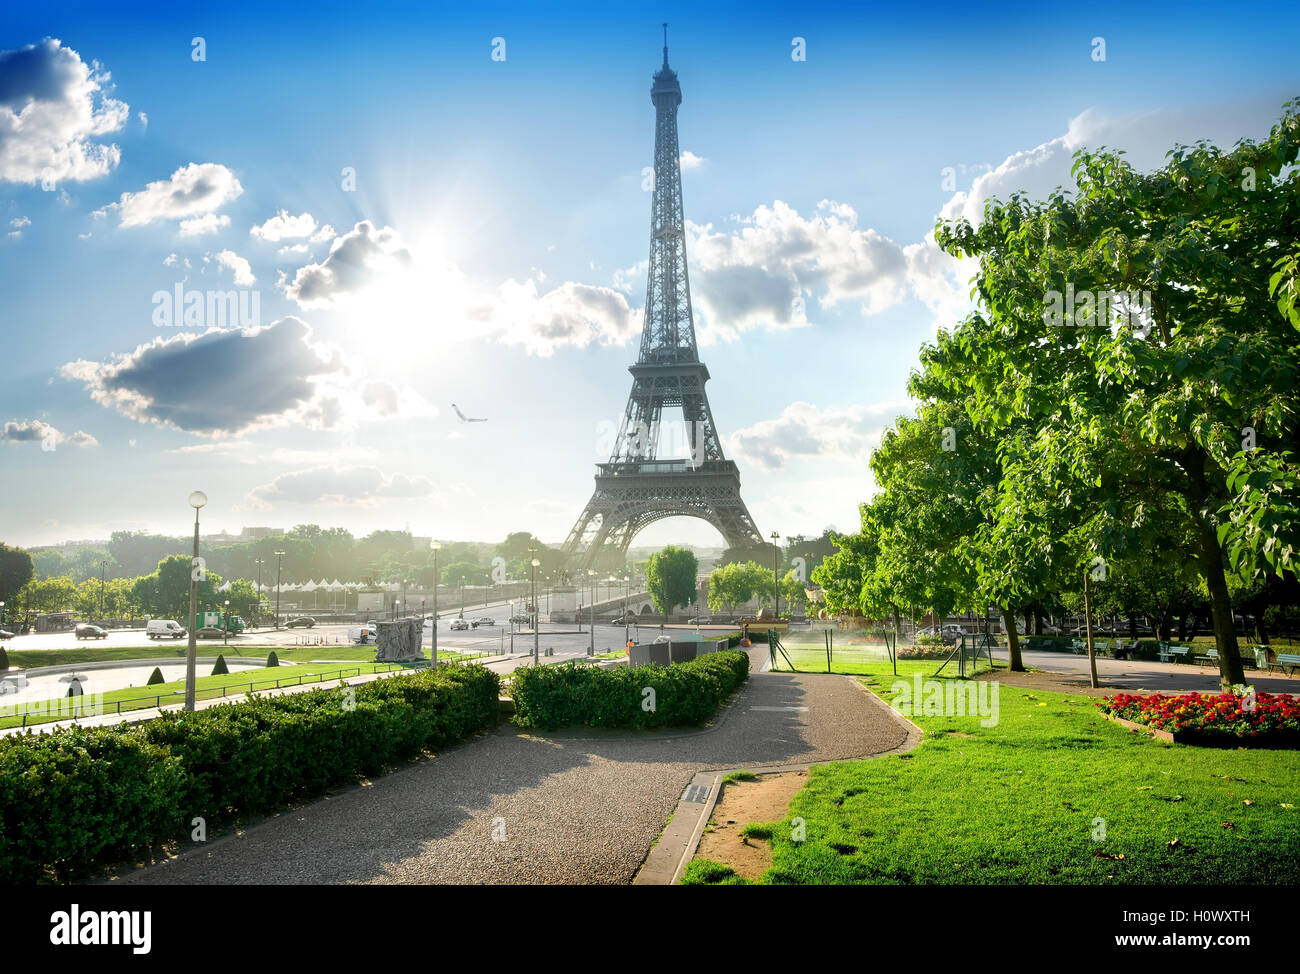 Eiffel tower near green park in Paris, France - Stock Image